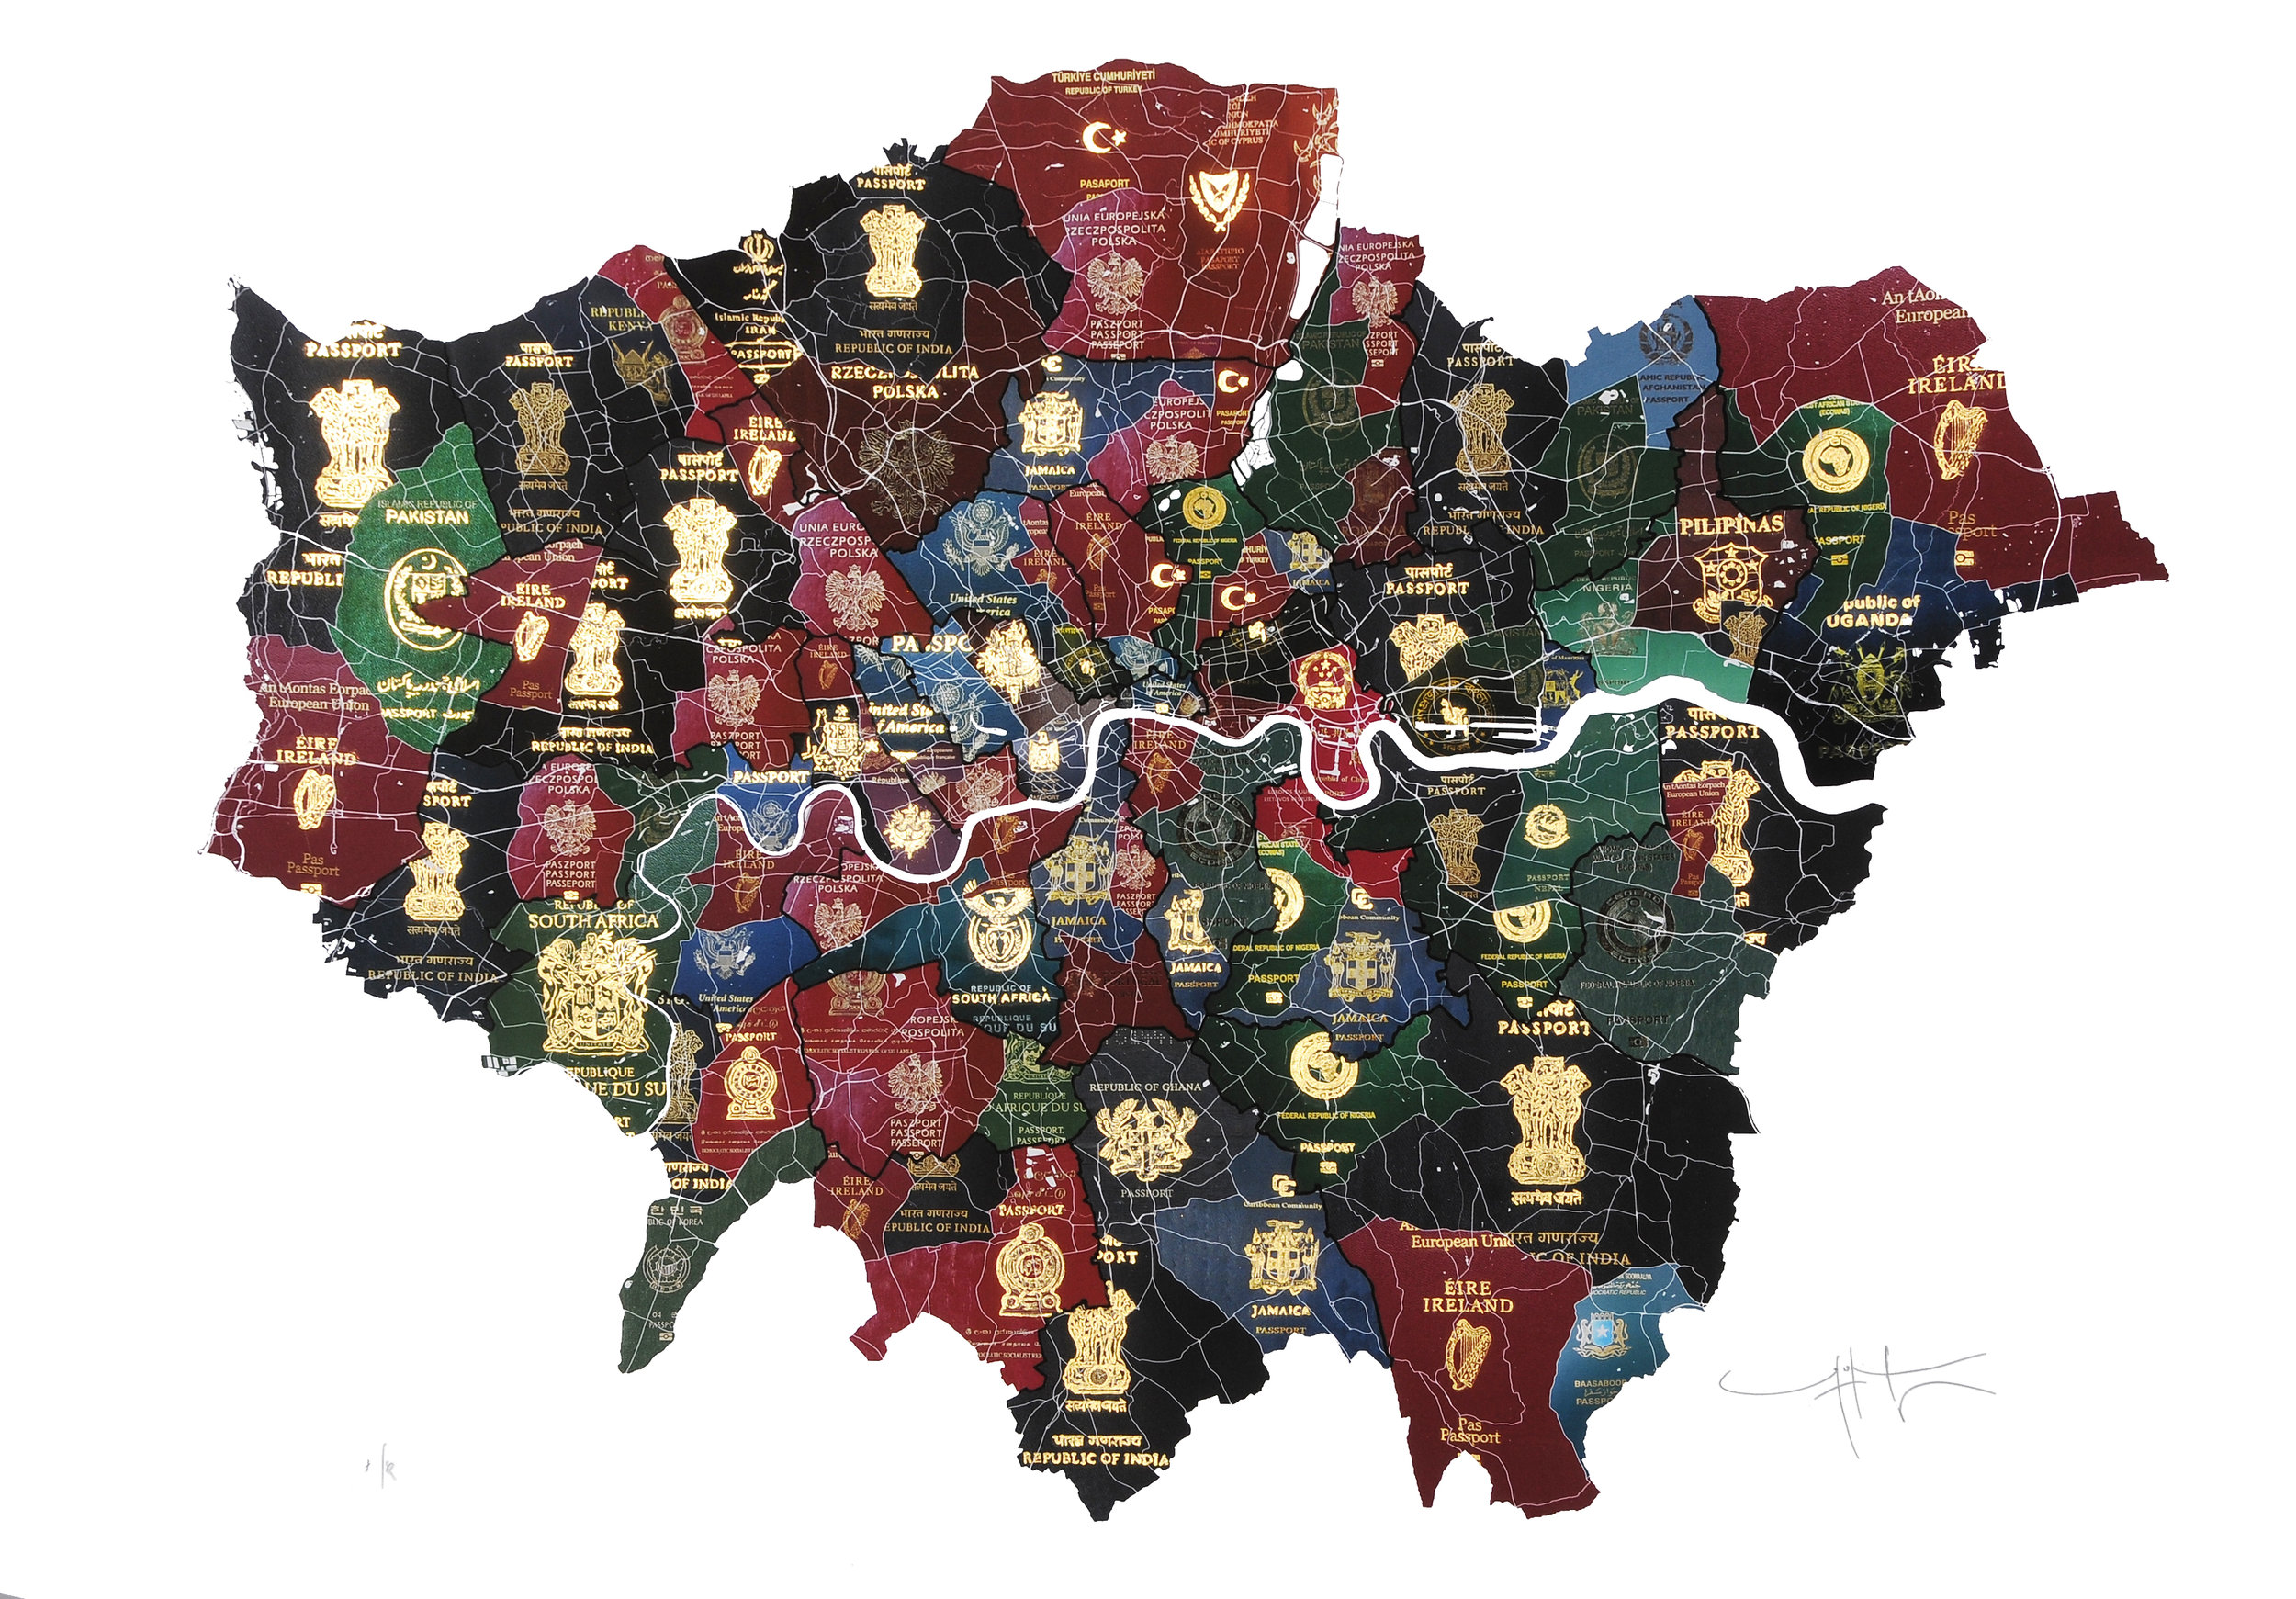 'London Passport Map' by Yanko Tihov. Archival print with 23 carat shell gold, signed limited edition of 30, priced at £1,800 unframed.